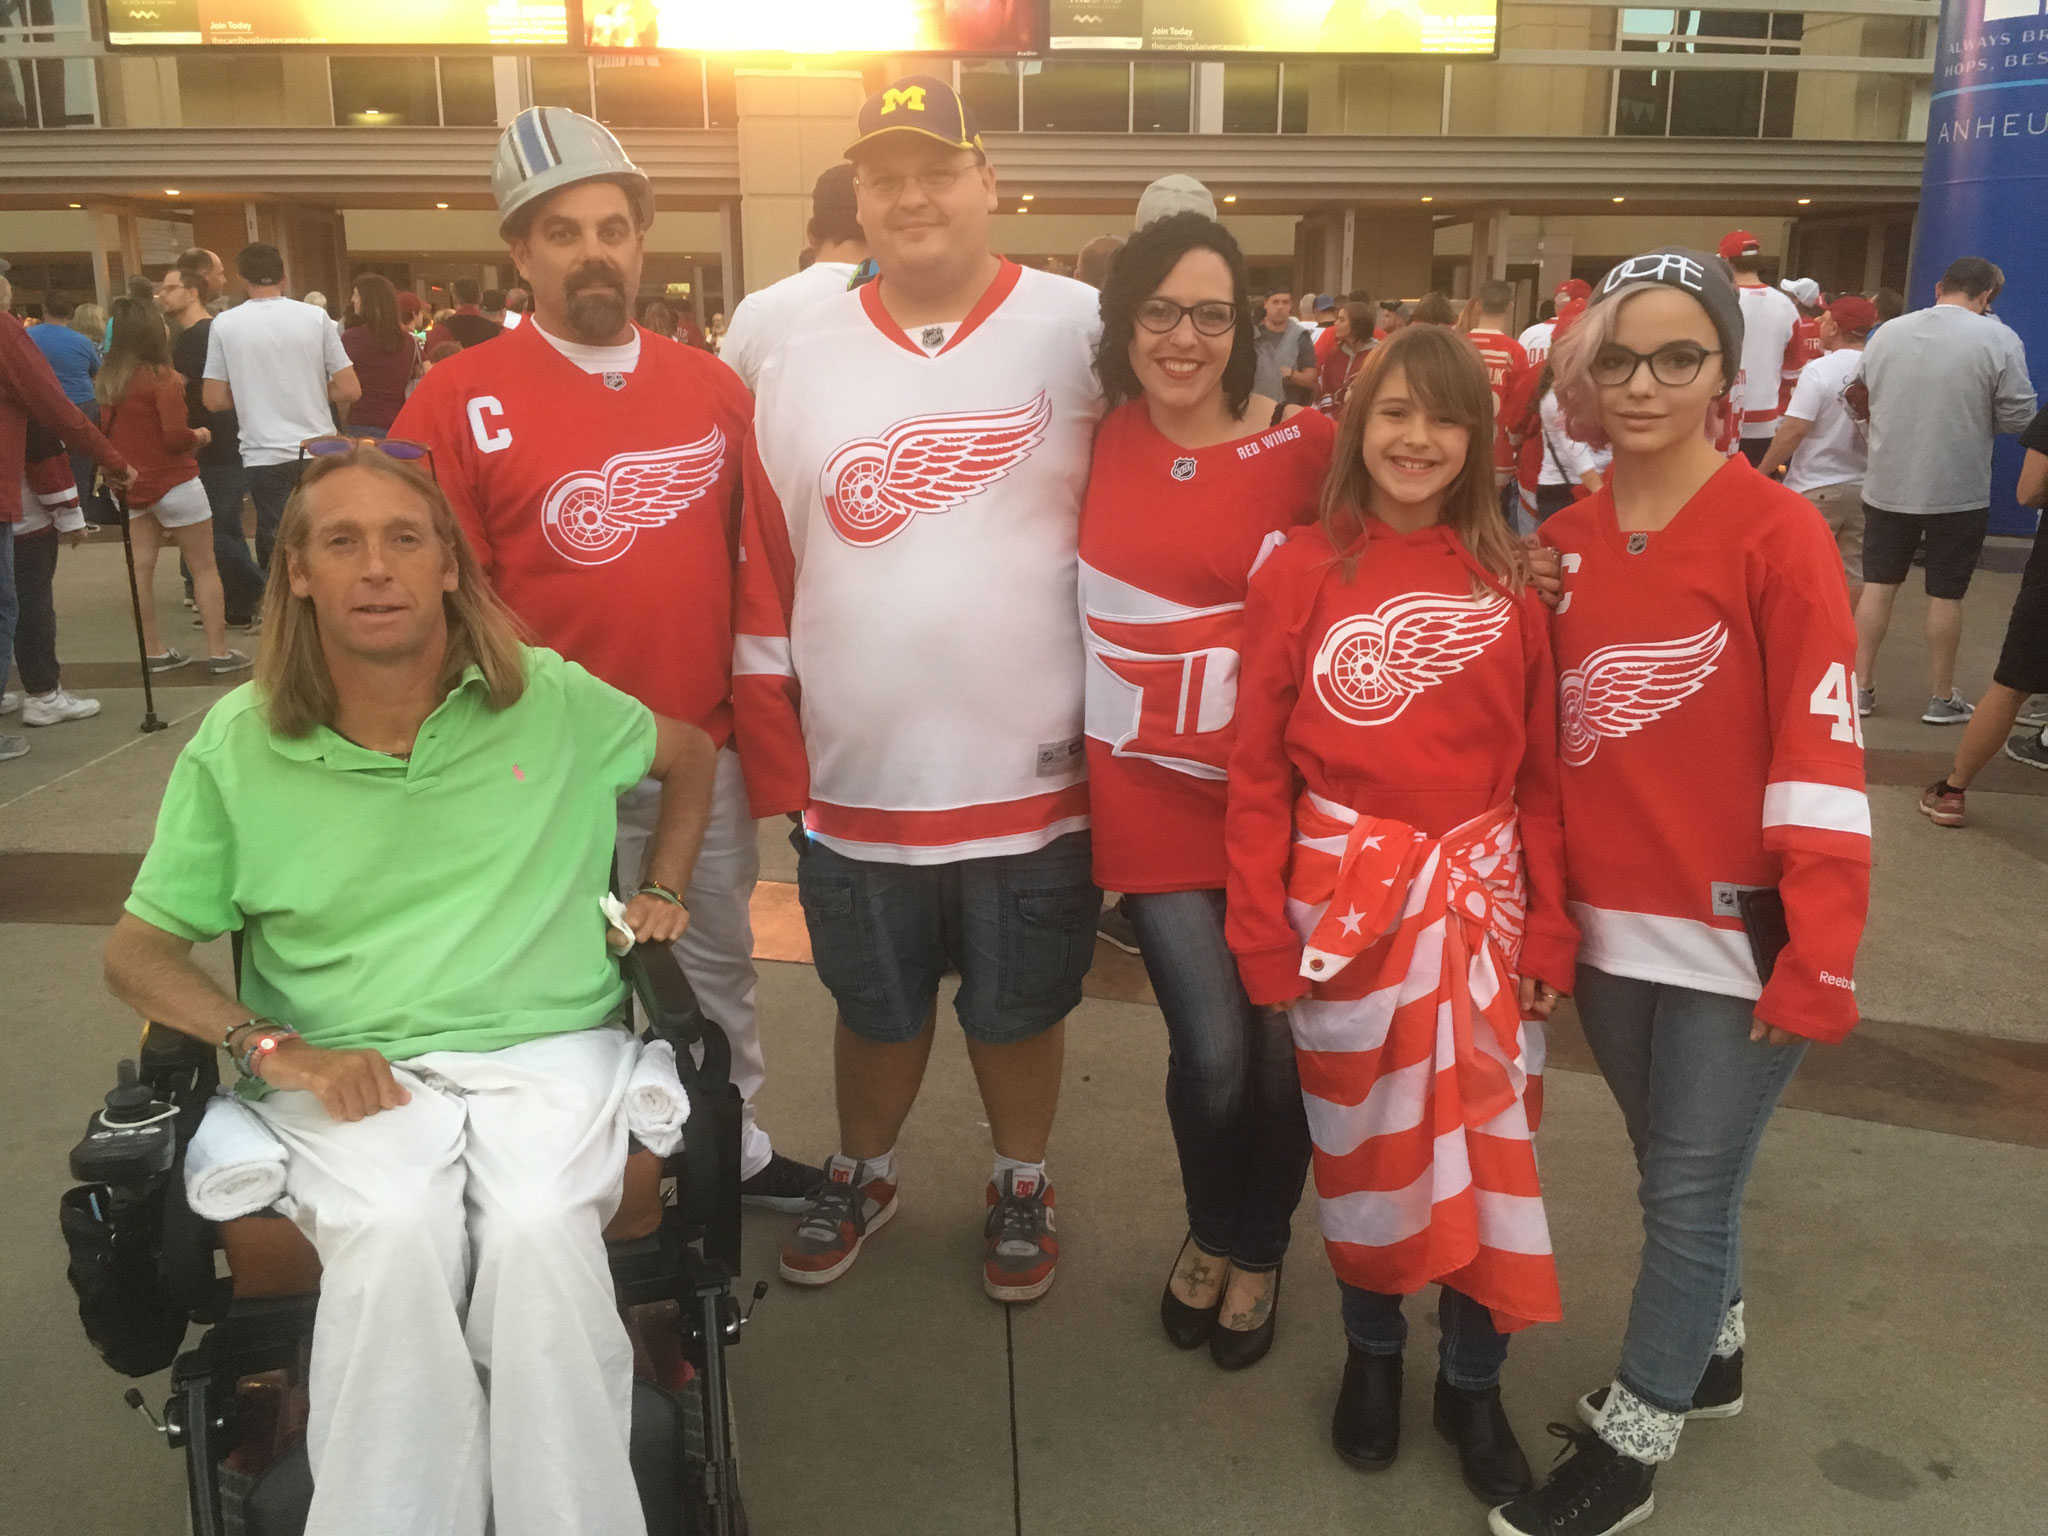 Red Wings Fans : Arizona Coyotes vs Detroit Red Wings (2017/18)